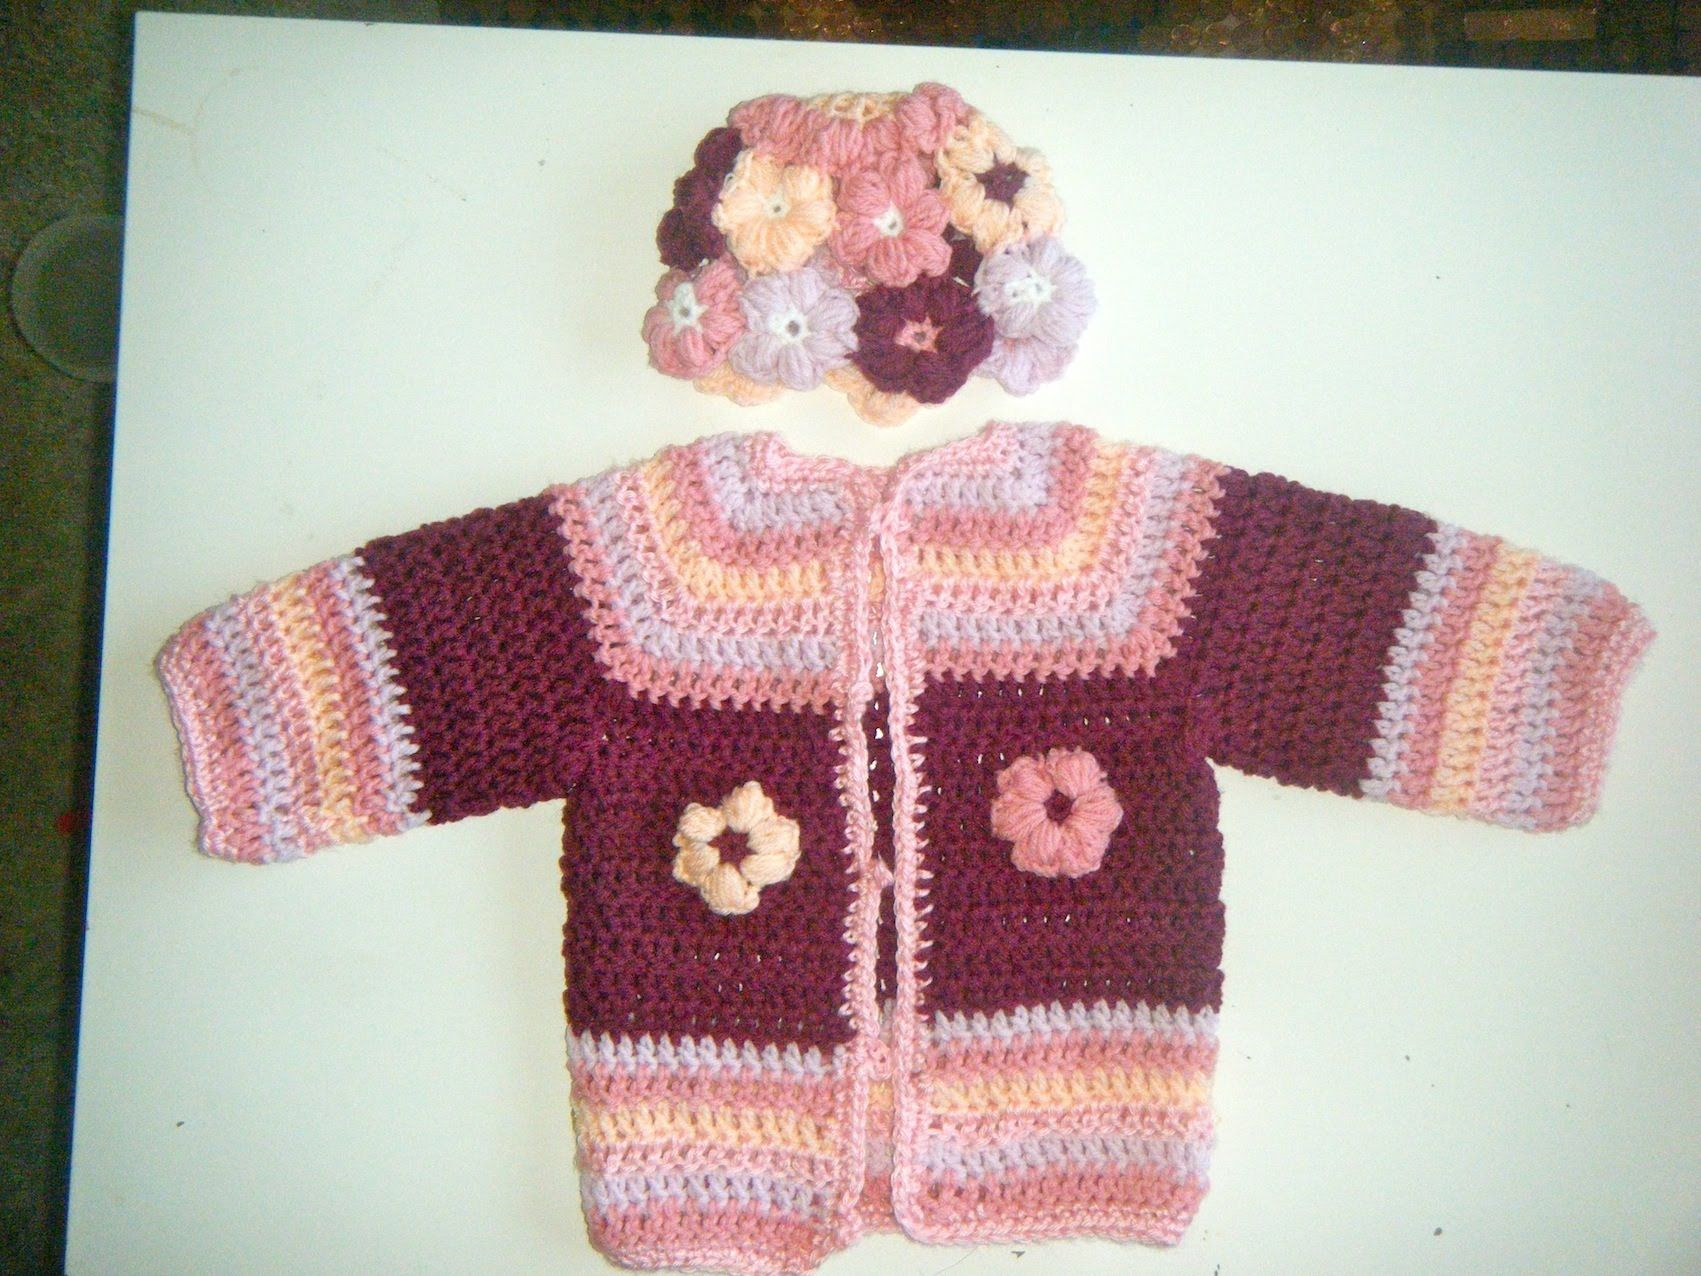 How to crochet a baby cardigan sweater 1 2 year old baby girl how to crochet a baby cardigan sweater 1 2 year old baby girl bankloansurffo Choice Image